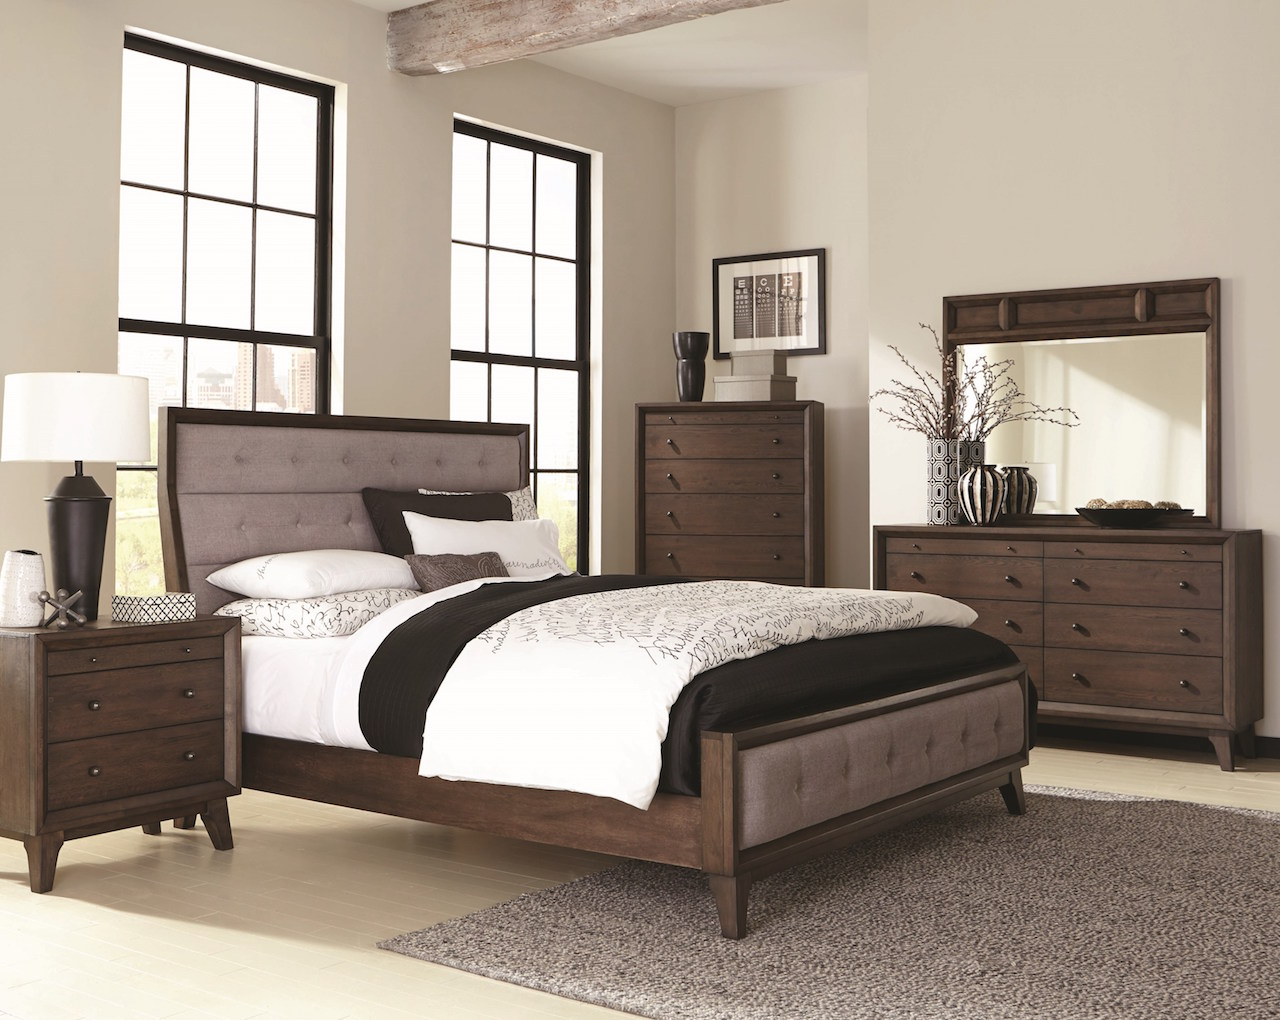 Bingham Collection B259 by Coaster Bedroom Set. Bingham Collection B259 Bedroom Set is a Retro Modern Design